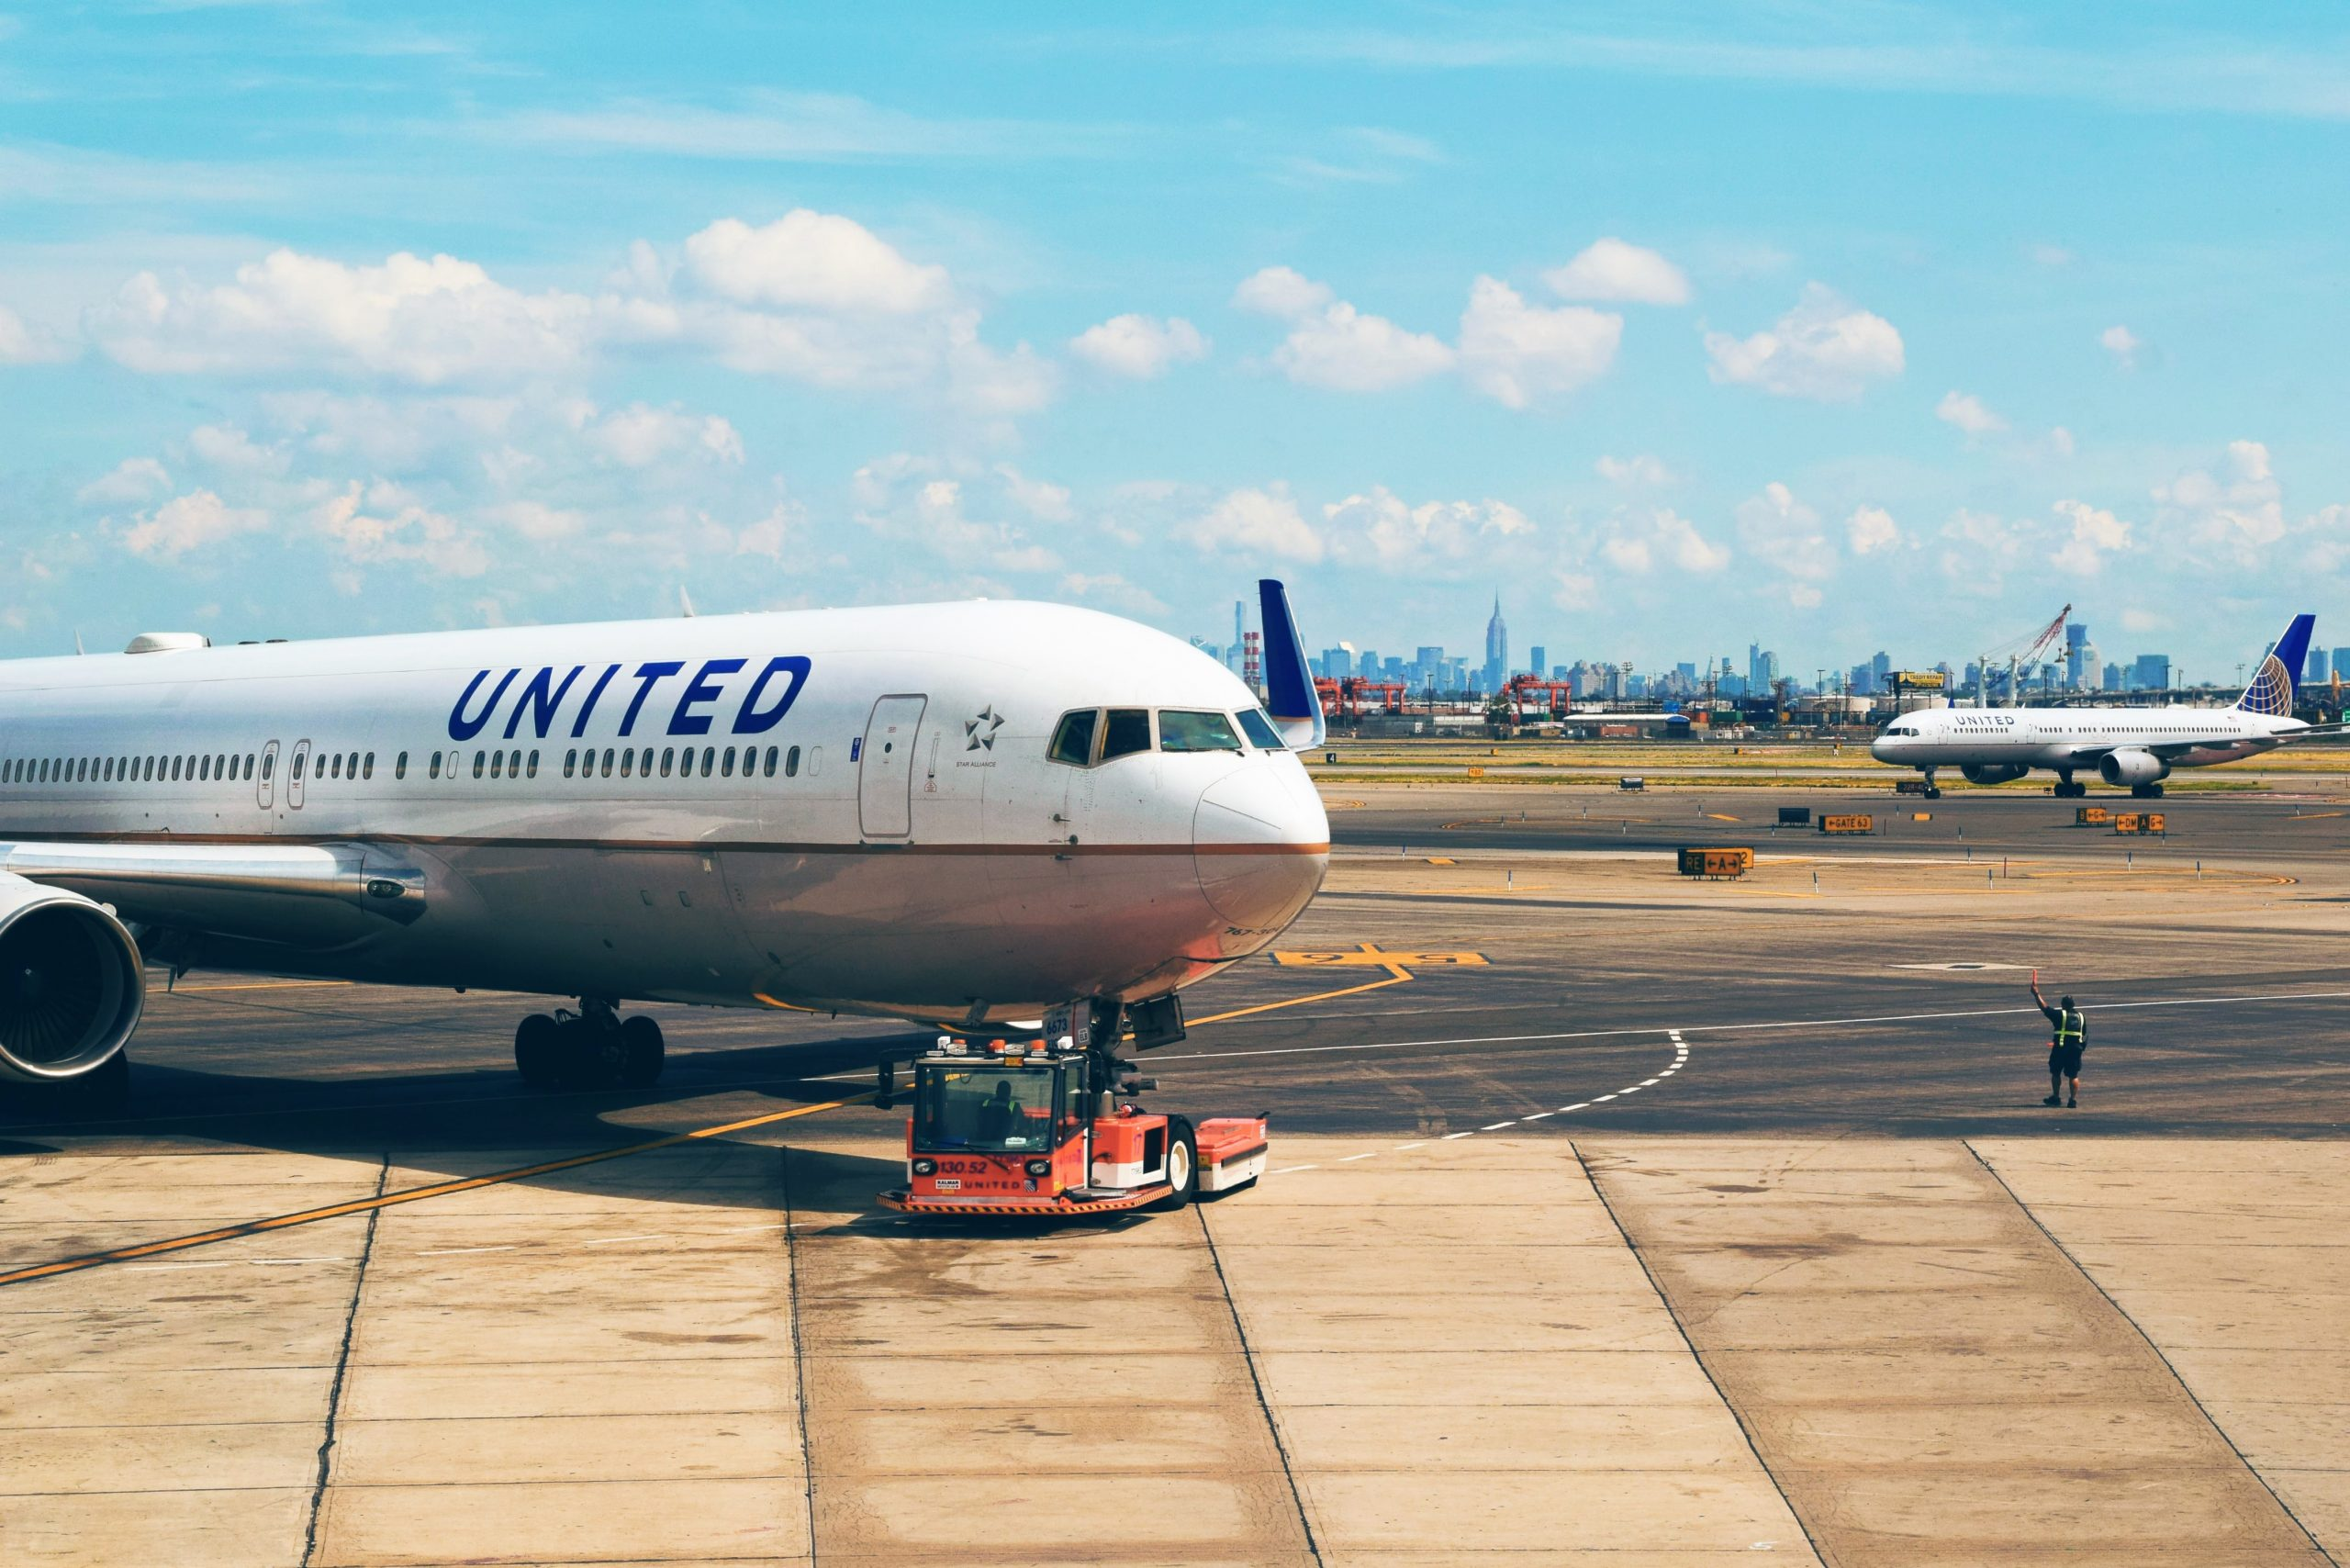 United-COVID-19-management-strategy-internet-bull-report